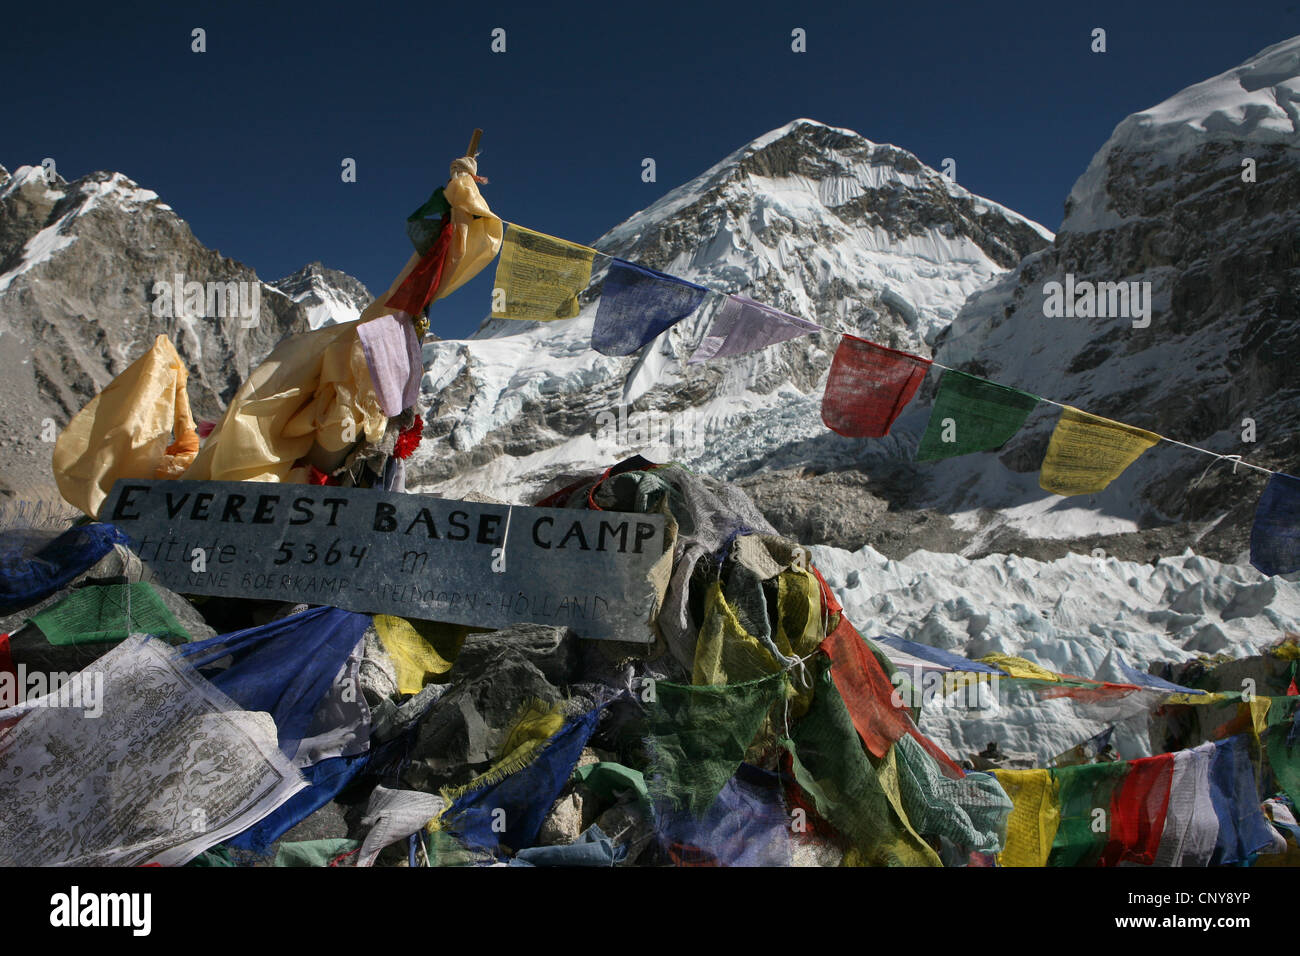 Buddhist prayer flags in the Everest Base Camp (5,364 m) in Khumbu region in the Himalayas, Nepal. - Stock Image